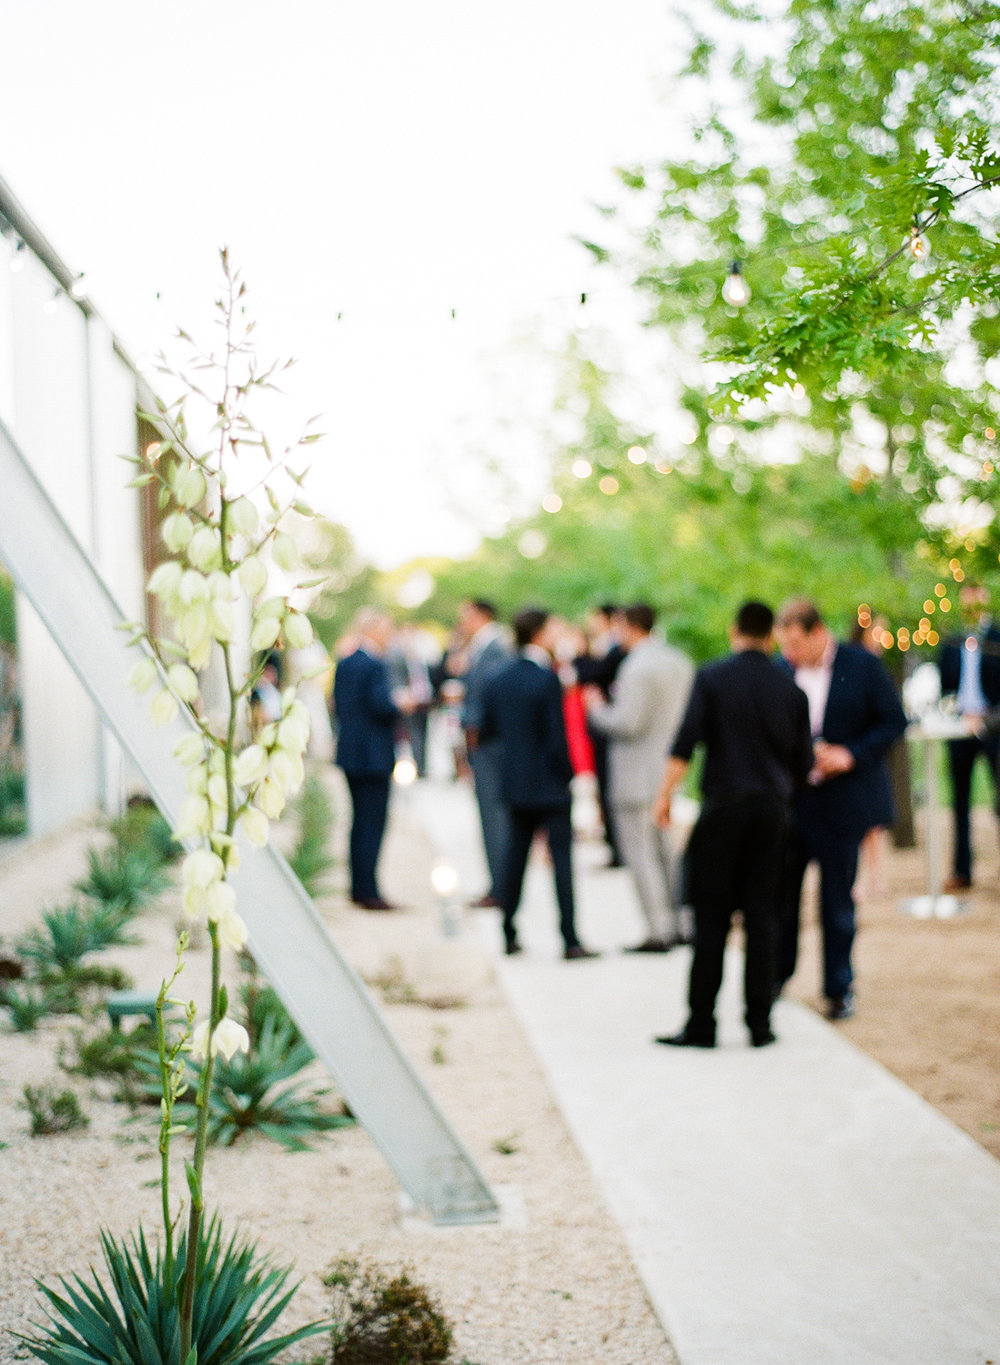 PROSPECT_HOUSE_WEDDING_AUSTIN_TX_BY_MATTHEW_MOORE_PHOTOGRAPHY_00573.jpg